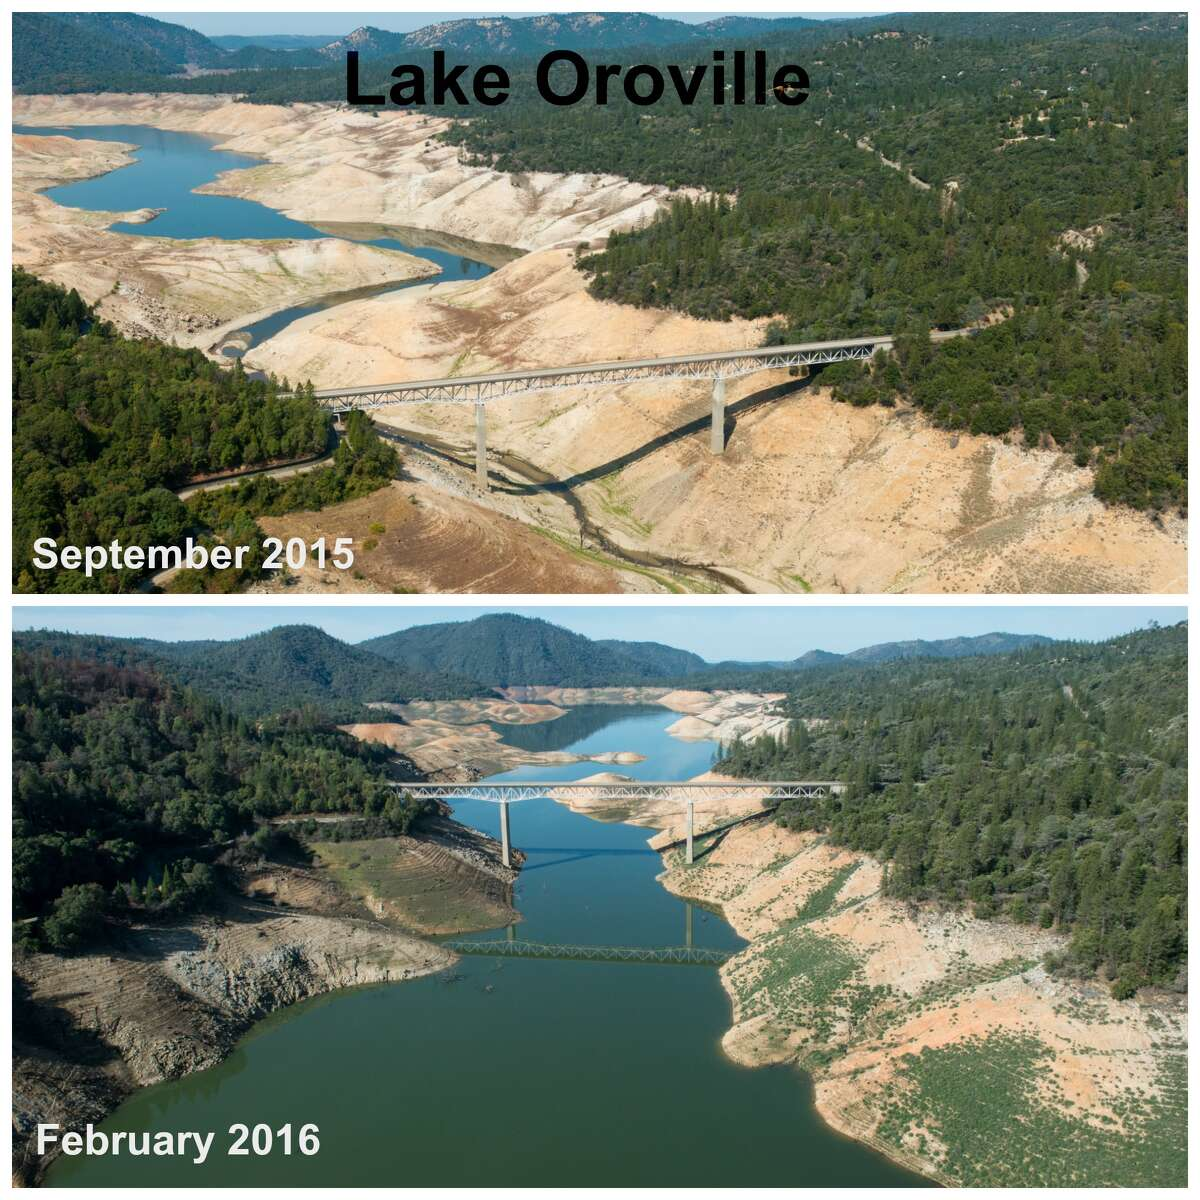 Lake Oroville Top: The west view of Lumpkin Rd. crossing over a bridge at Lake Oroville in Oroville, Calif. on September 8, 2015. On this day, the water storage was 1,057,971 acre feet, 30% of total capacity, and 46% of historical average for this date. Lake Oroville is a reservoir formed by the Oroville Dam impounding the Feather River, located in Butte County, northern California. (Florence Low) Bottom: The west view of Lumpkin Road crossing over a bridge at Lake Oroville in Oroville, Calif. on February 25, 2016. On this day, the water storage was 1,828,048 acre feet, 52% of total capacity, and 75% of historical average for this date. Lake Oroville is a reservoir formed by the Oroville Dam impounding the Feather River, located in Butte County, northern California.